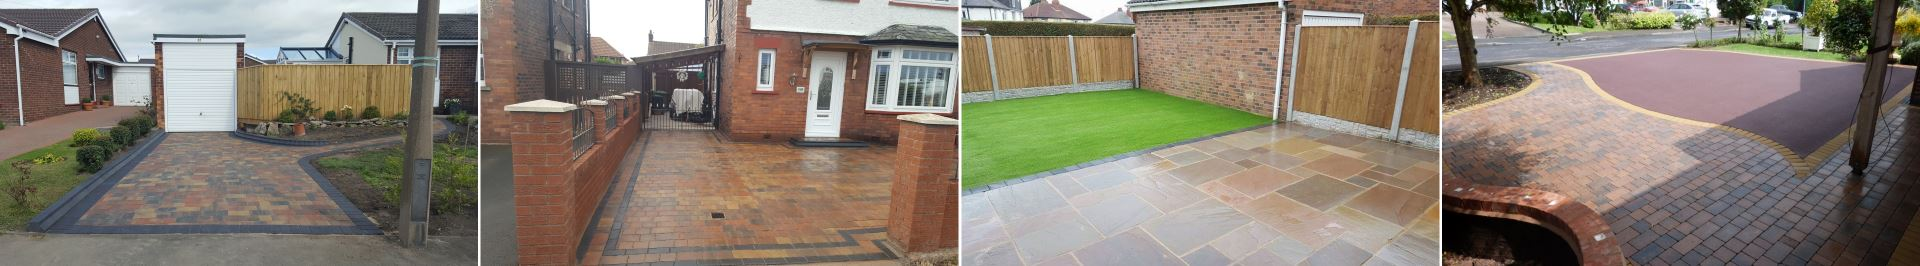 PD Pavers Ltd - Paving, Driveways, Tarmac and Building in Carlisle, Longtown and Cumbria